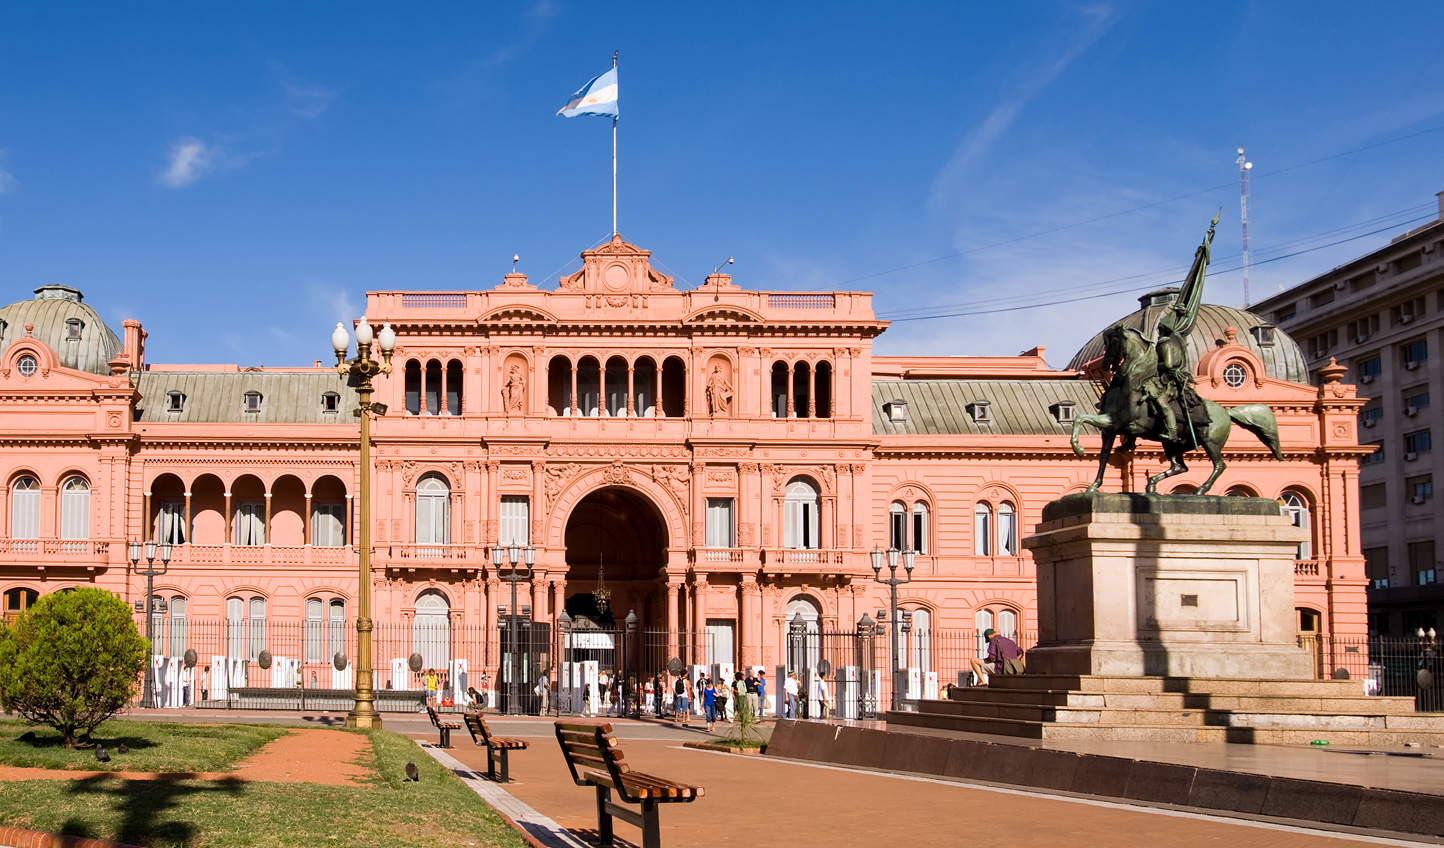 Head to Argentina's government building, La Casa Rosada